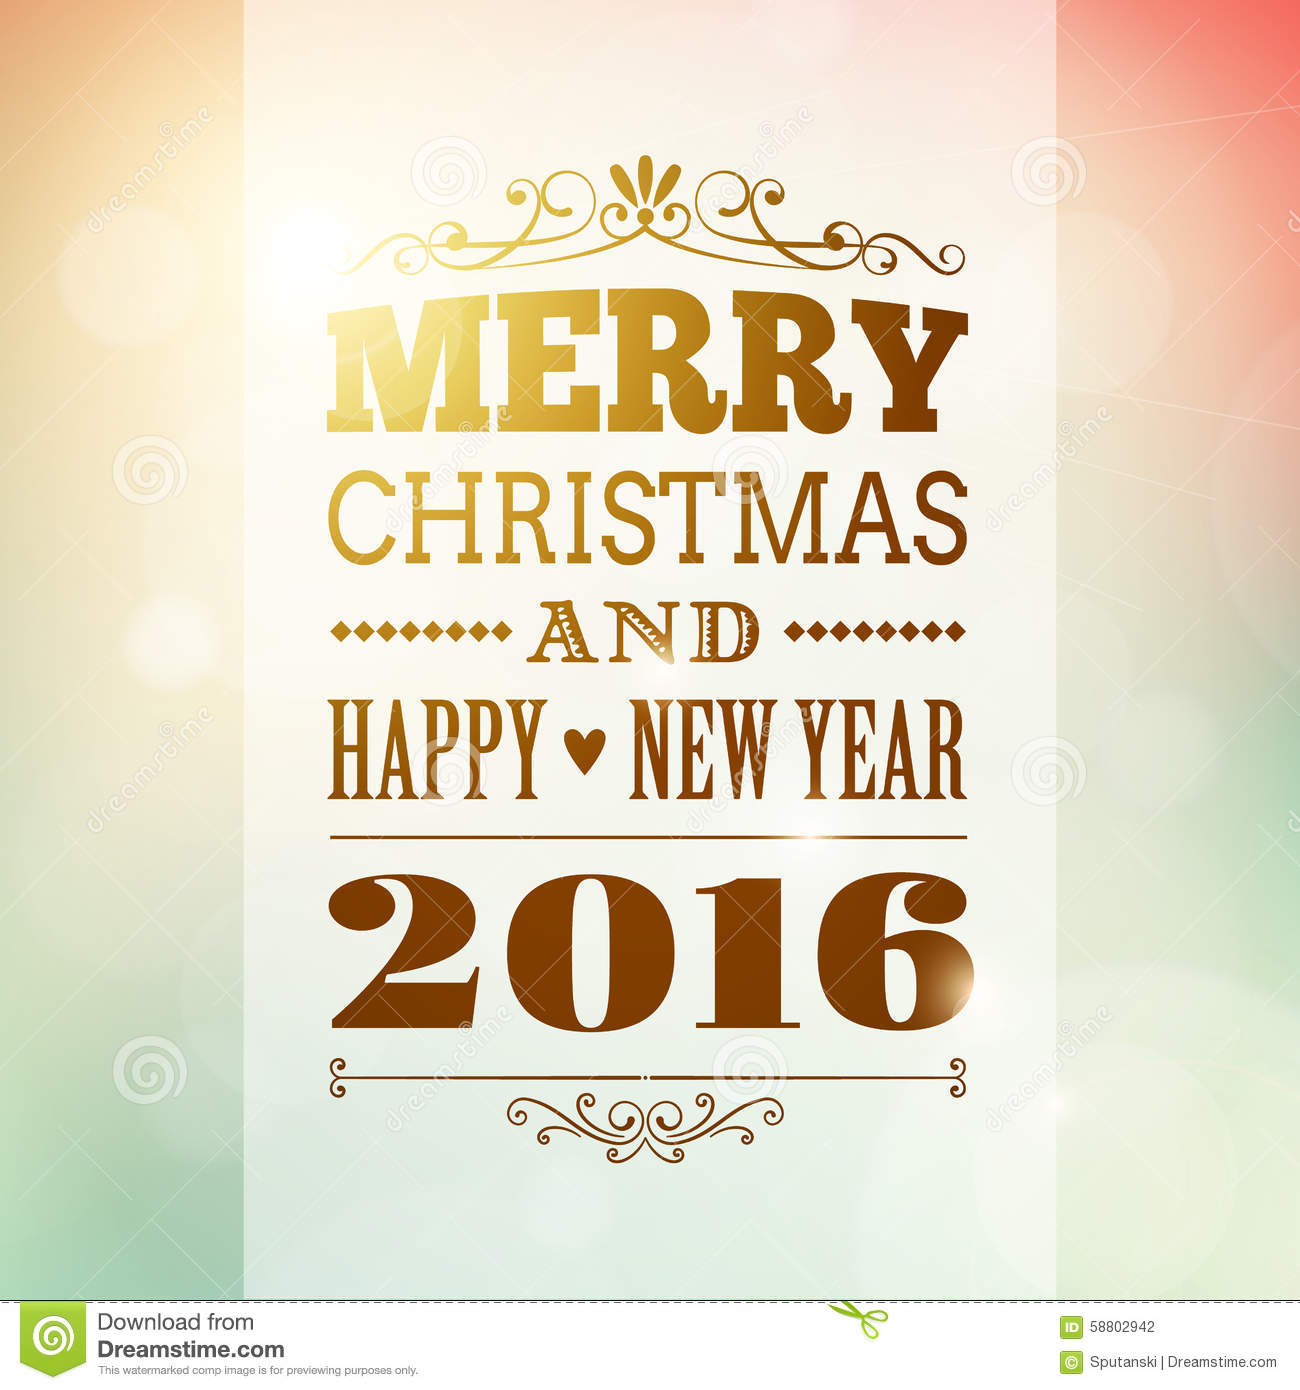 Merry Christmas And Happy New Year 2016 Background Stock Vector